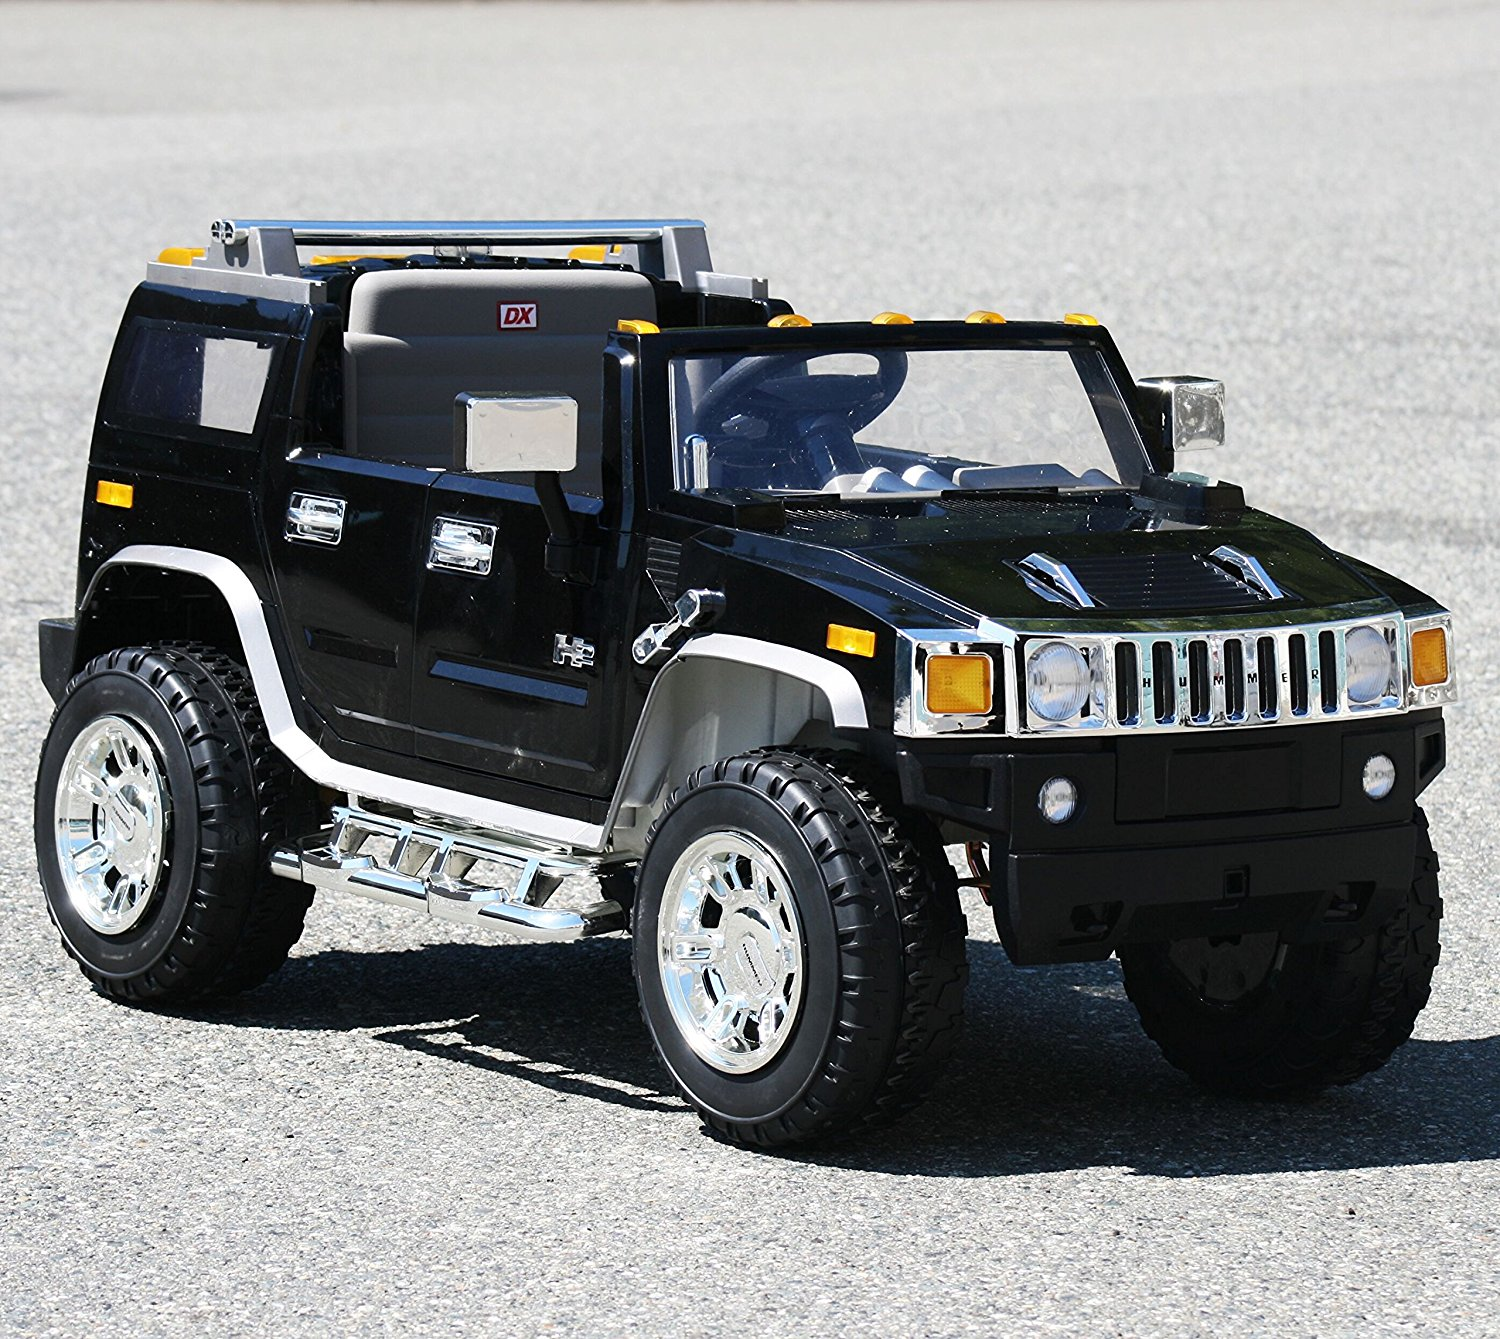 Ride On Hummer H2 1206 Black Electric Car The Remote Control For Kids From